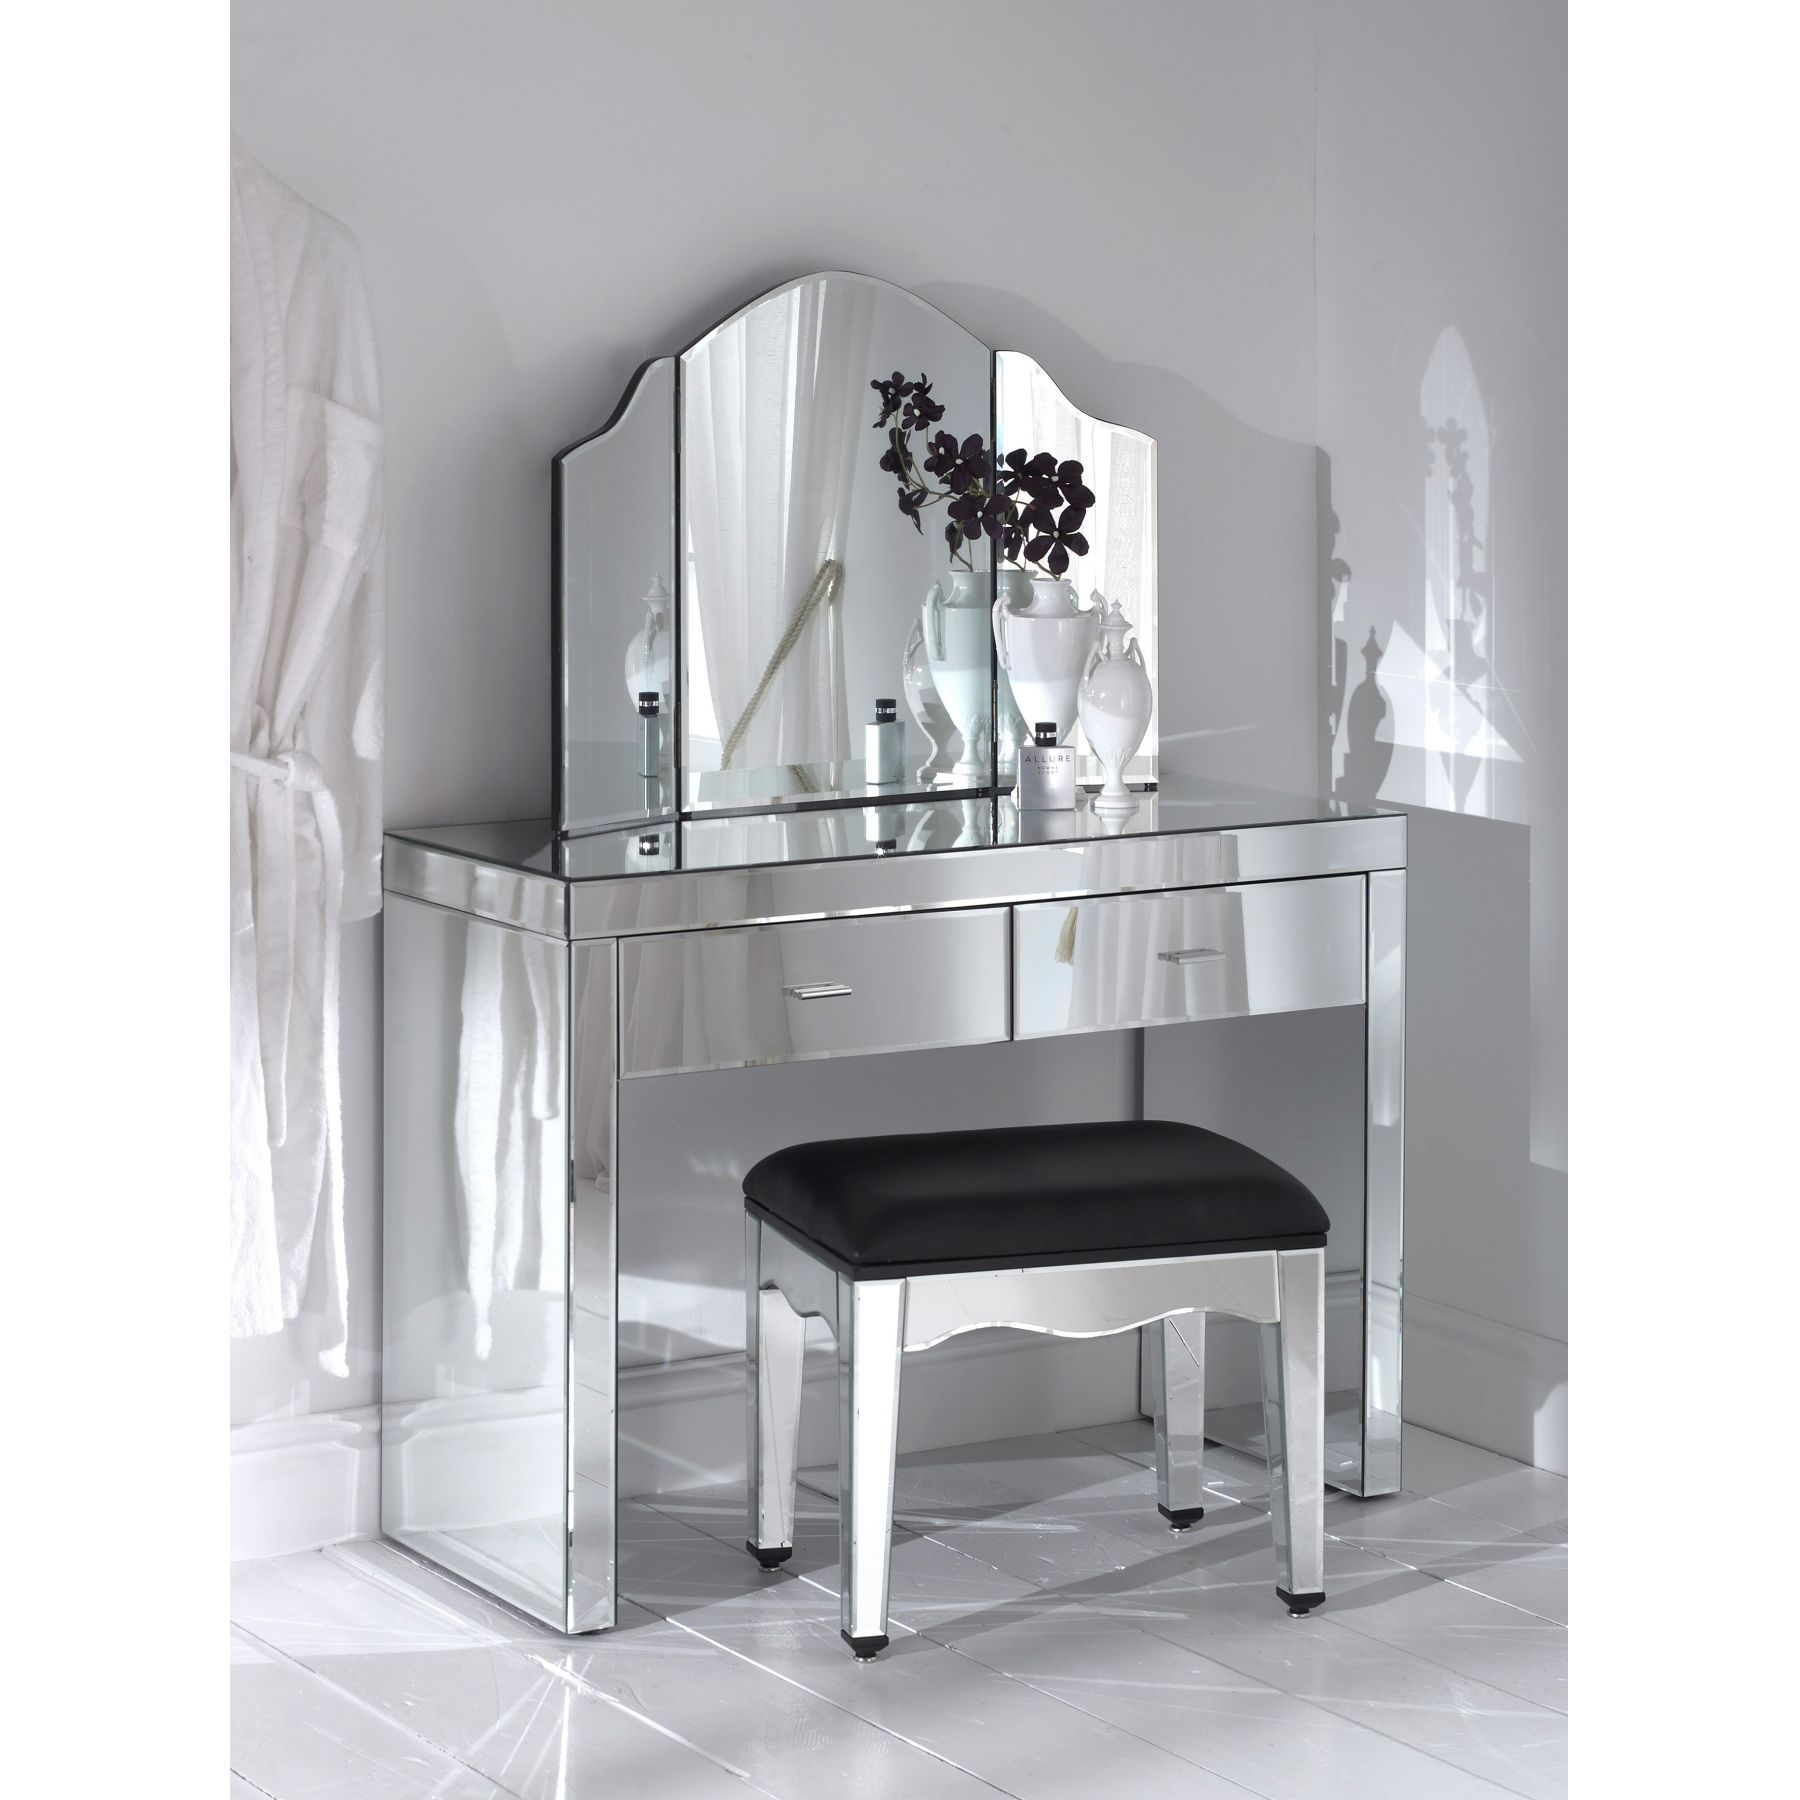 Love This Mirrored Vanity Dream Home Pinterest Dressing Intended For Silver Dressing Table Mirror (Image 10 of 15)